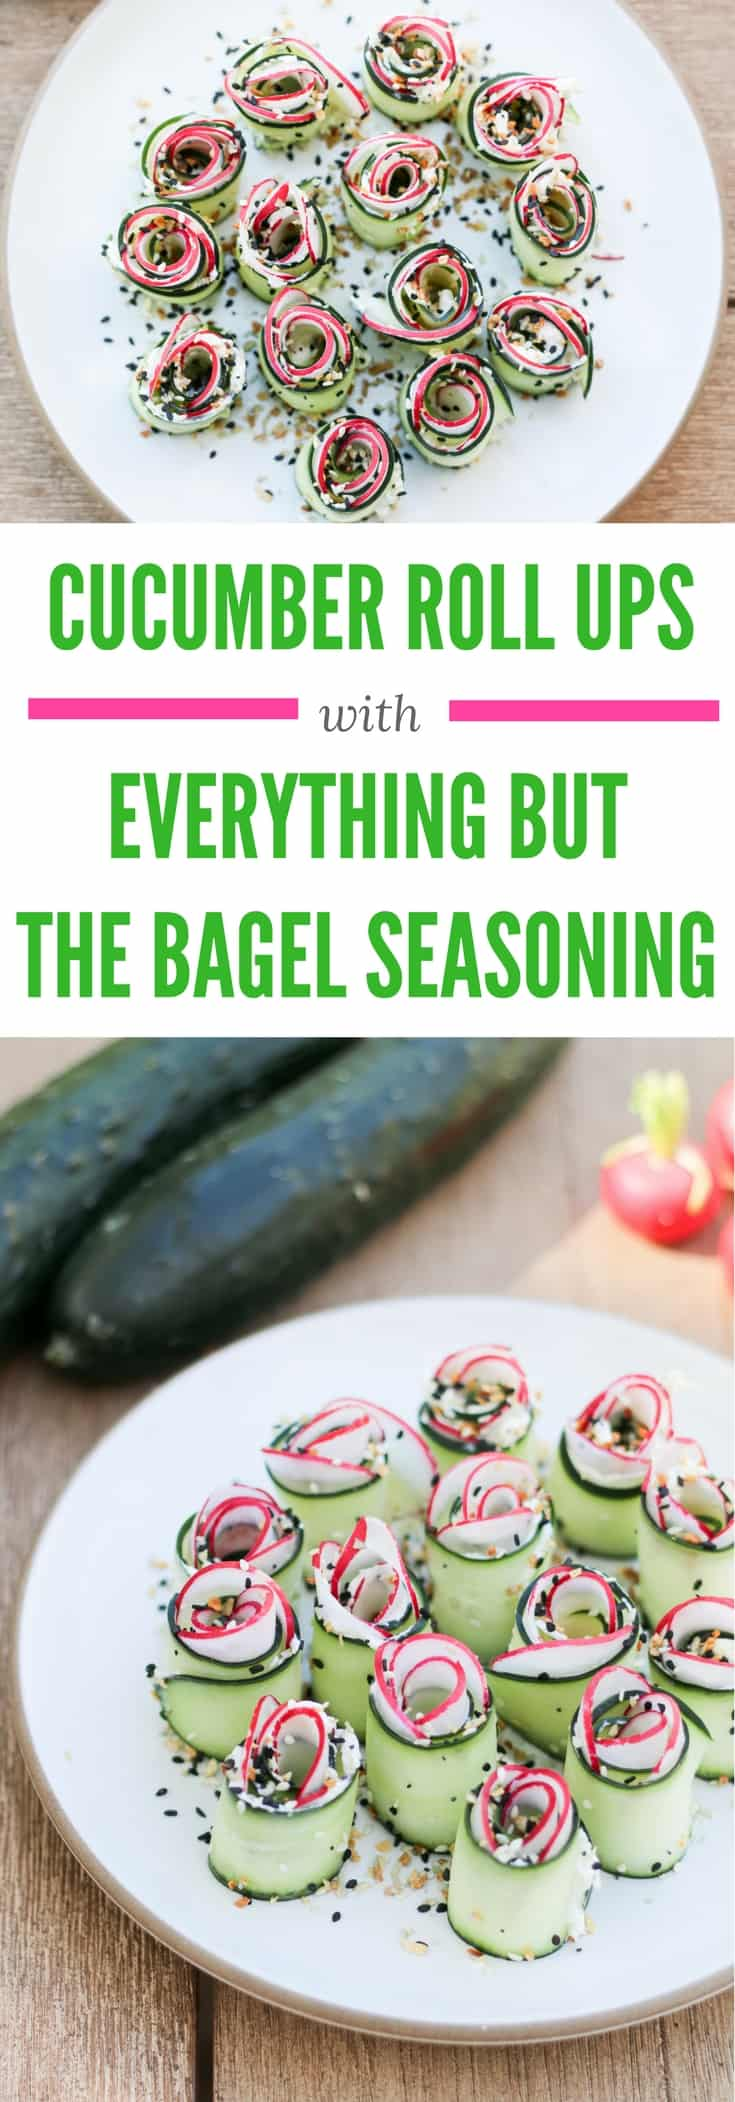 Cucumber Roll Up Recipe- An Everything But the Bagel Seasoning Recipe